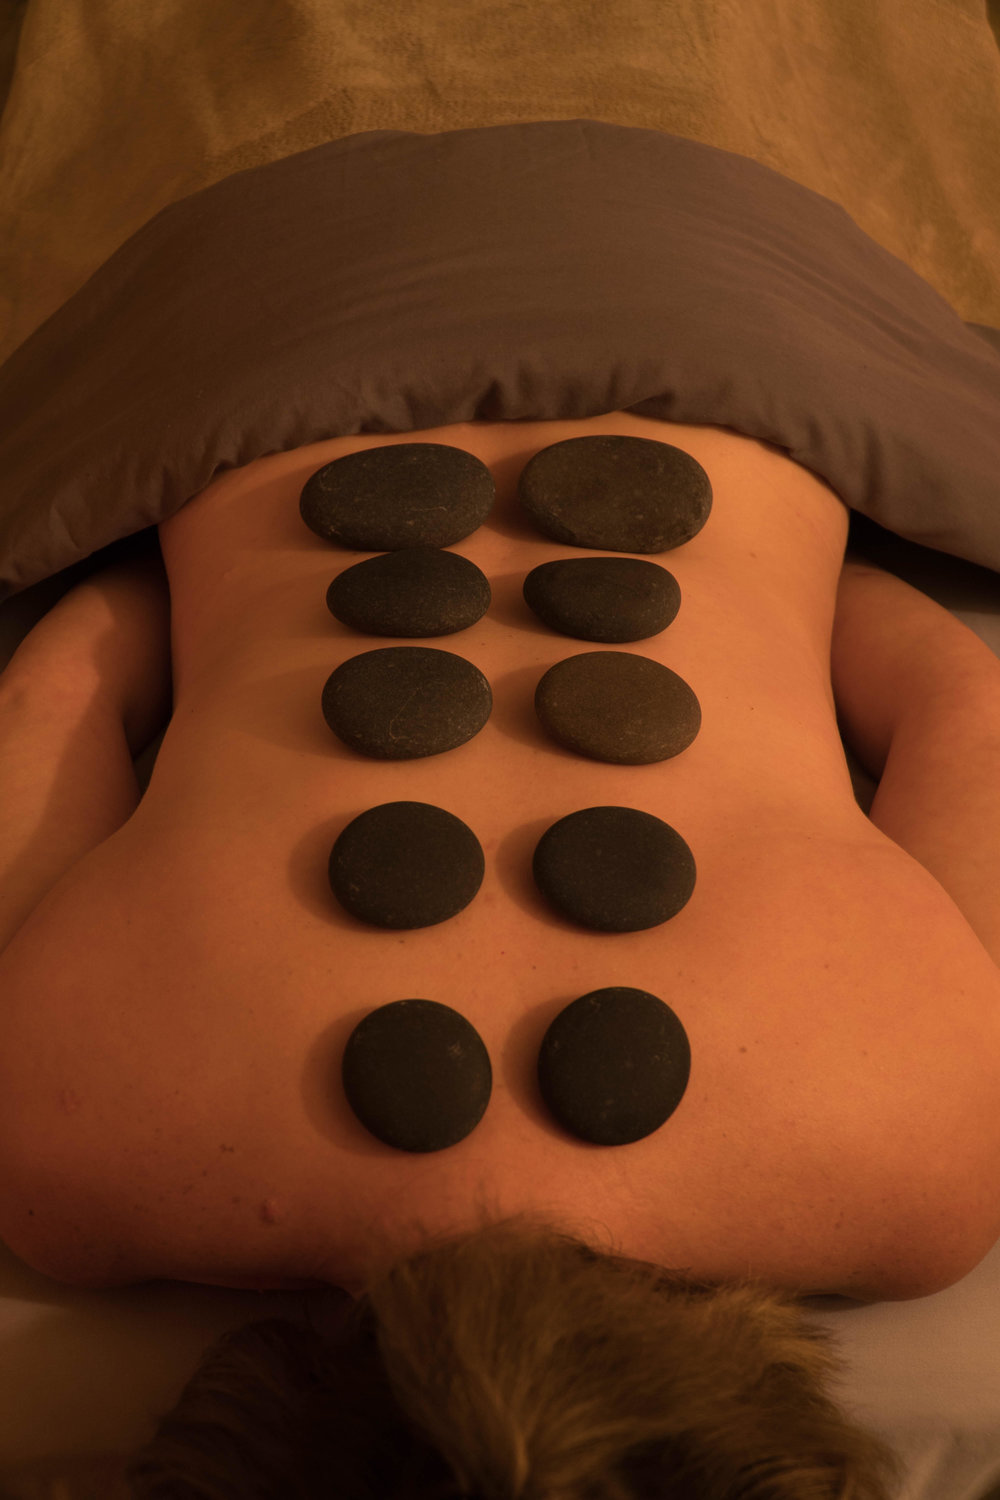 Rock N' Roll Massage, also known as Hot Stone Massage. Provided by Tamara.